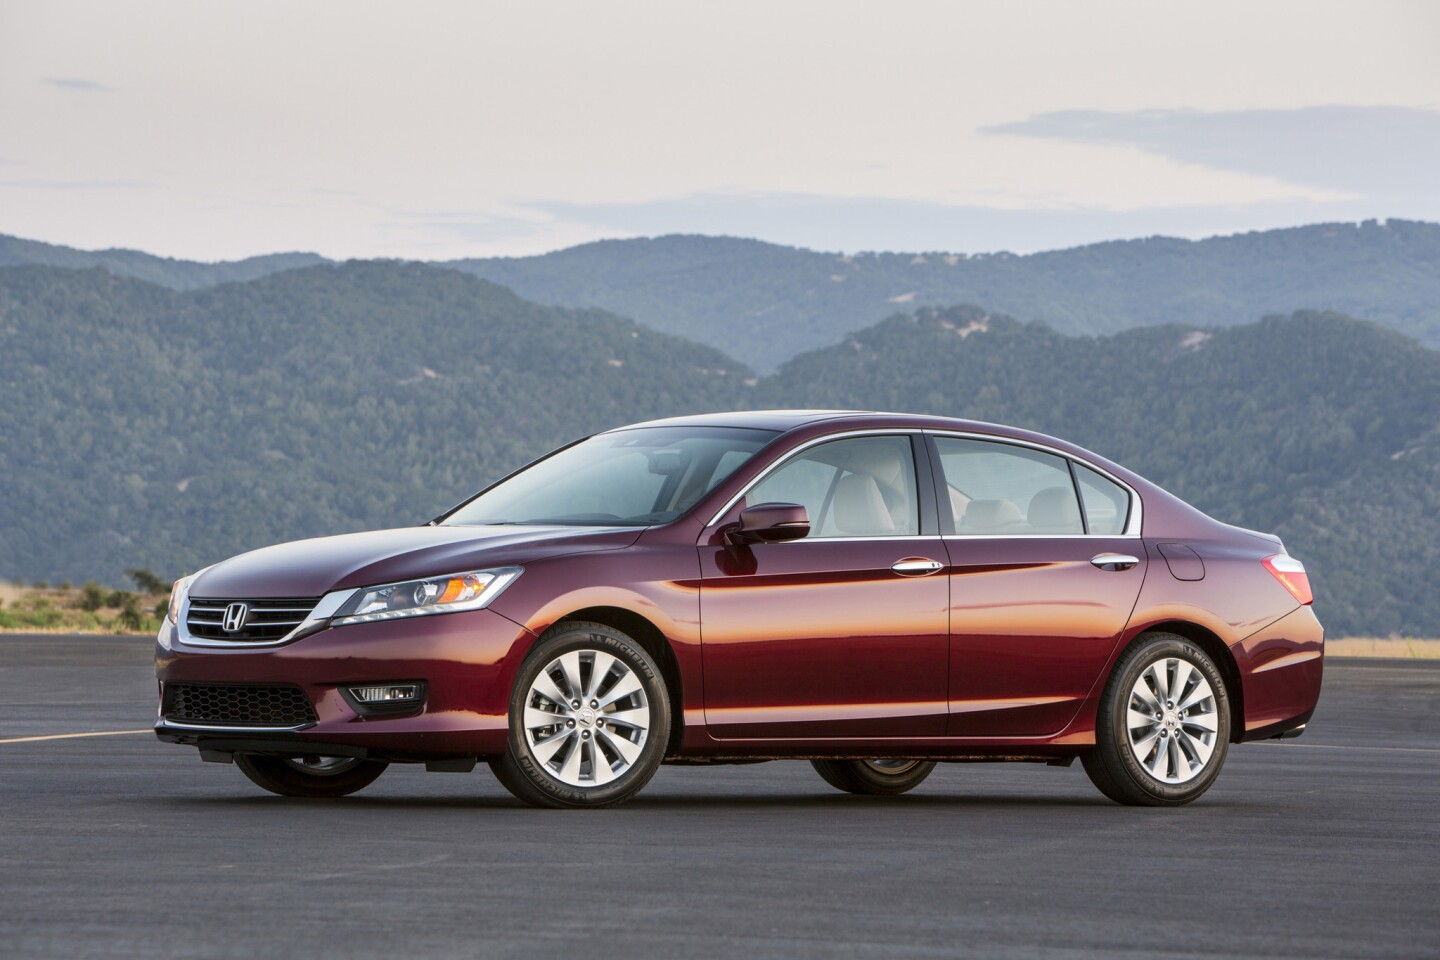 The Honda Accord was the passenger car that was most likely to have more than 200,000 miles on the odometer when offered for resale -- 1.6%, according to iSeeCars.com, a used-car information site.